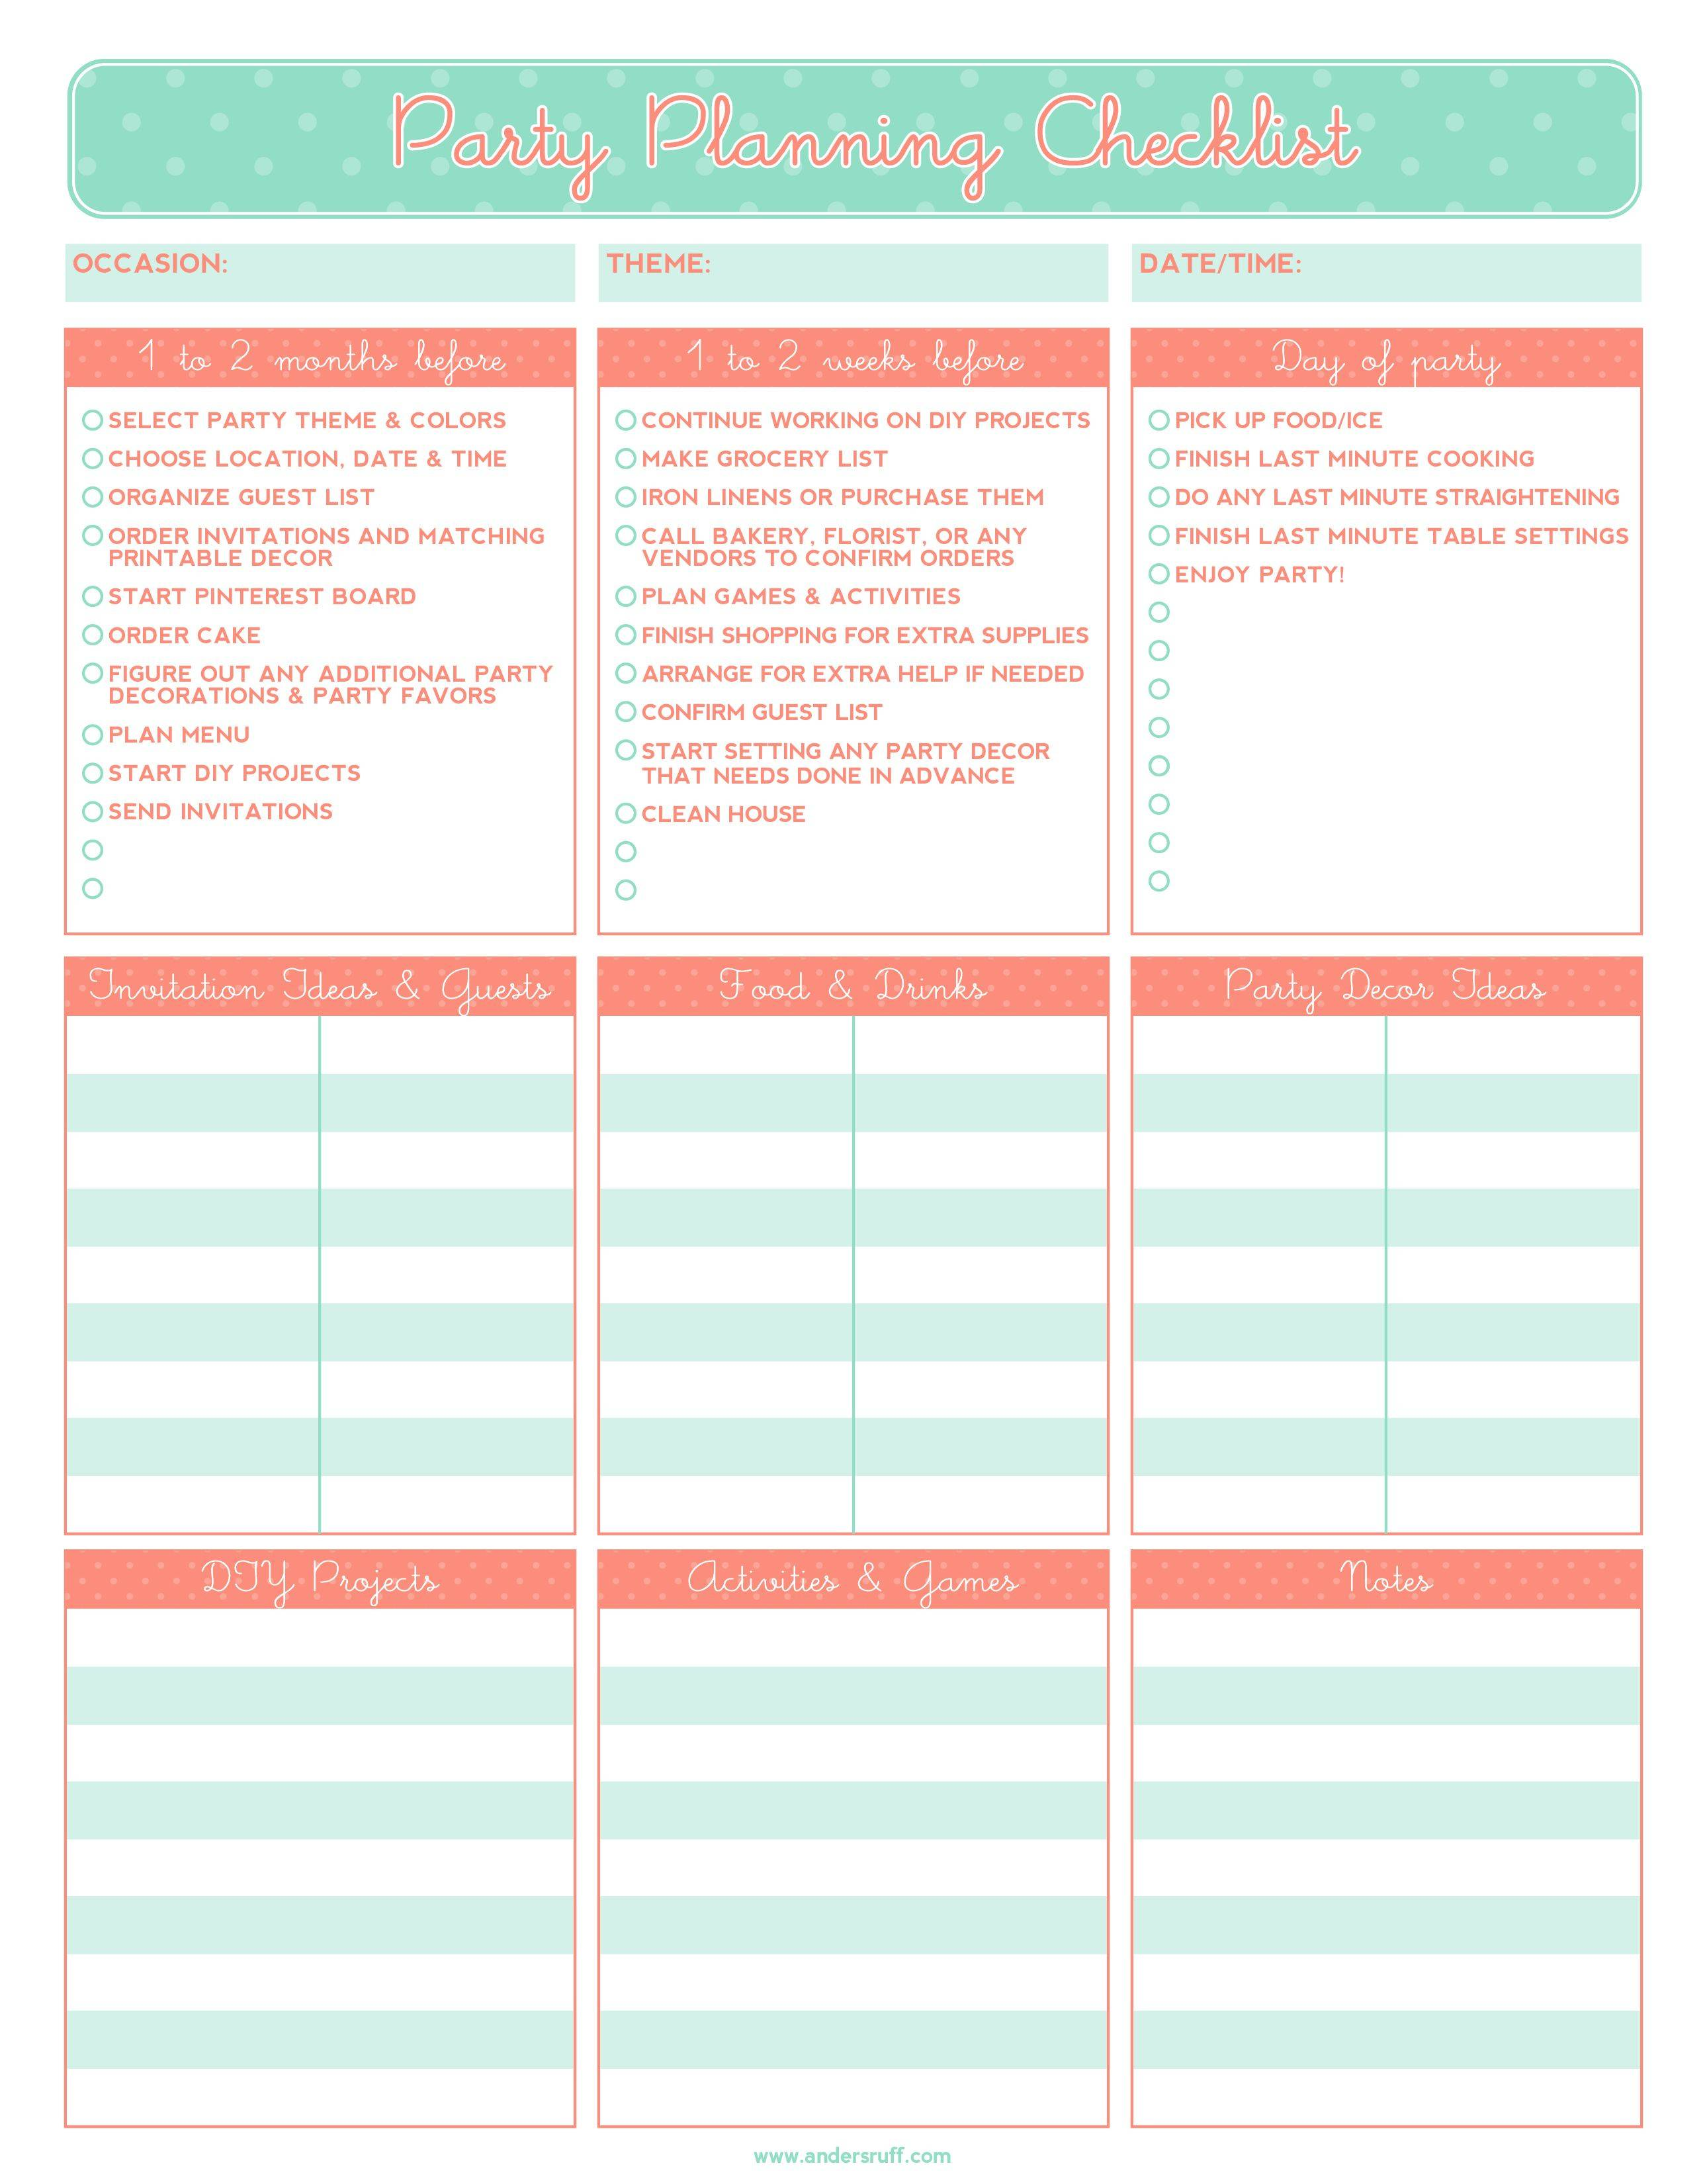 Party Planning Checklist Template Free